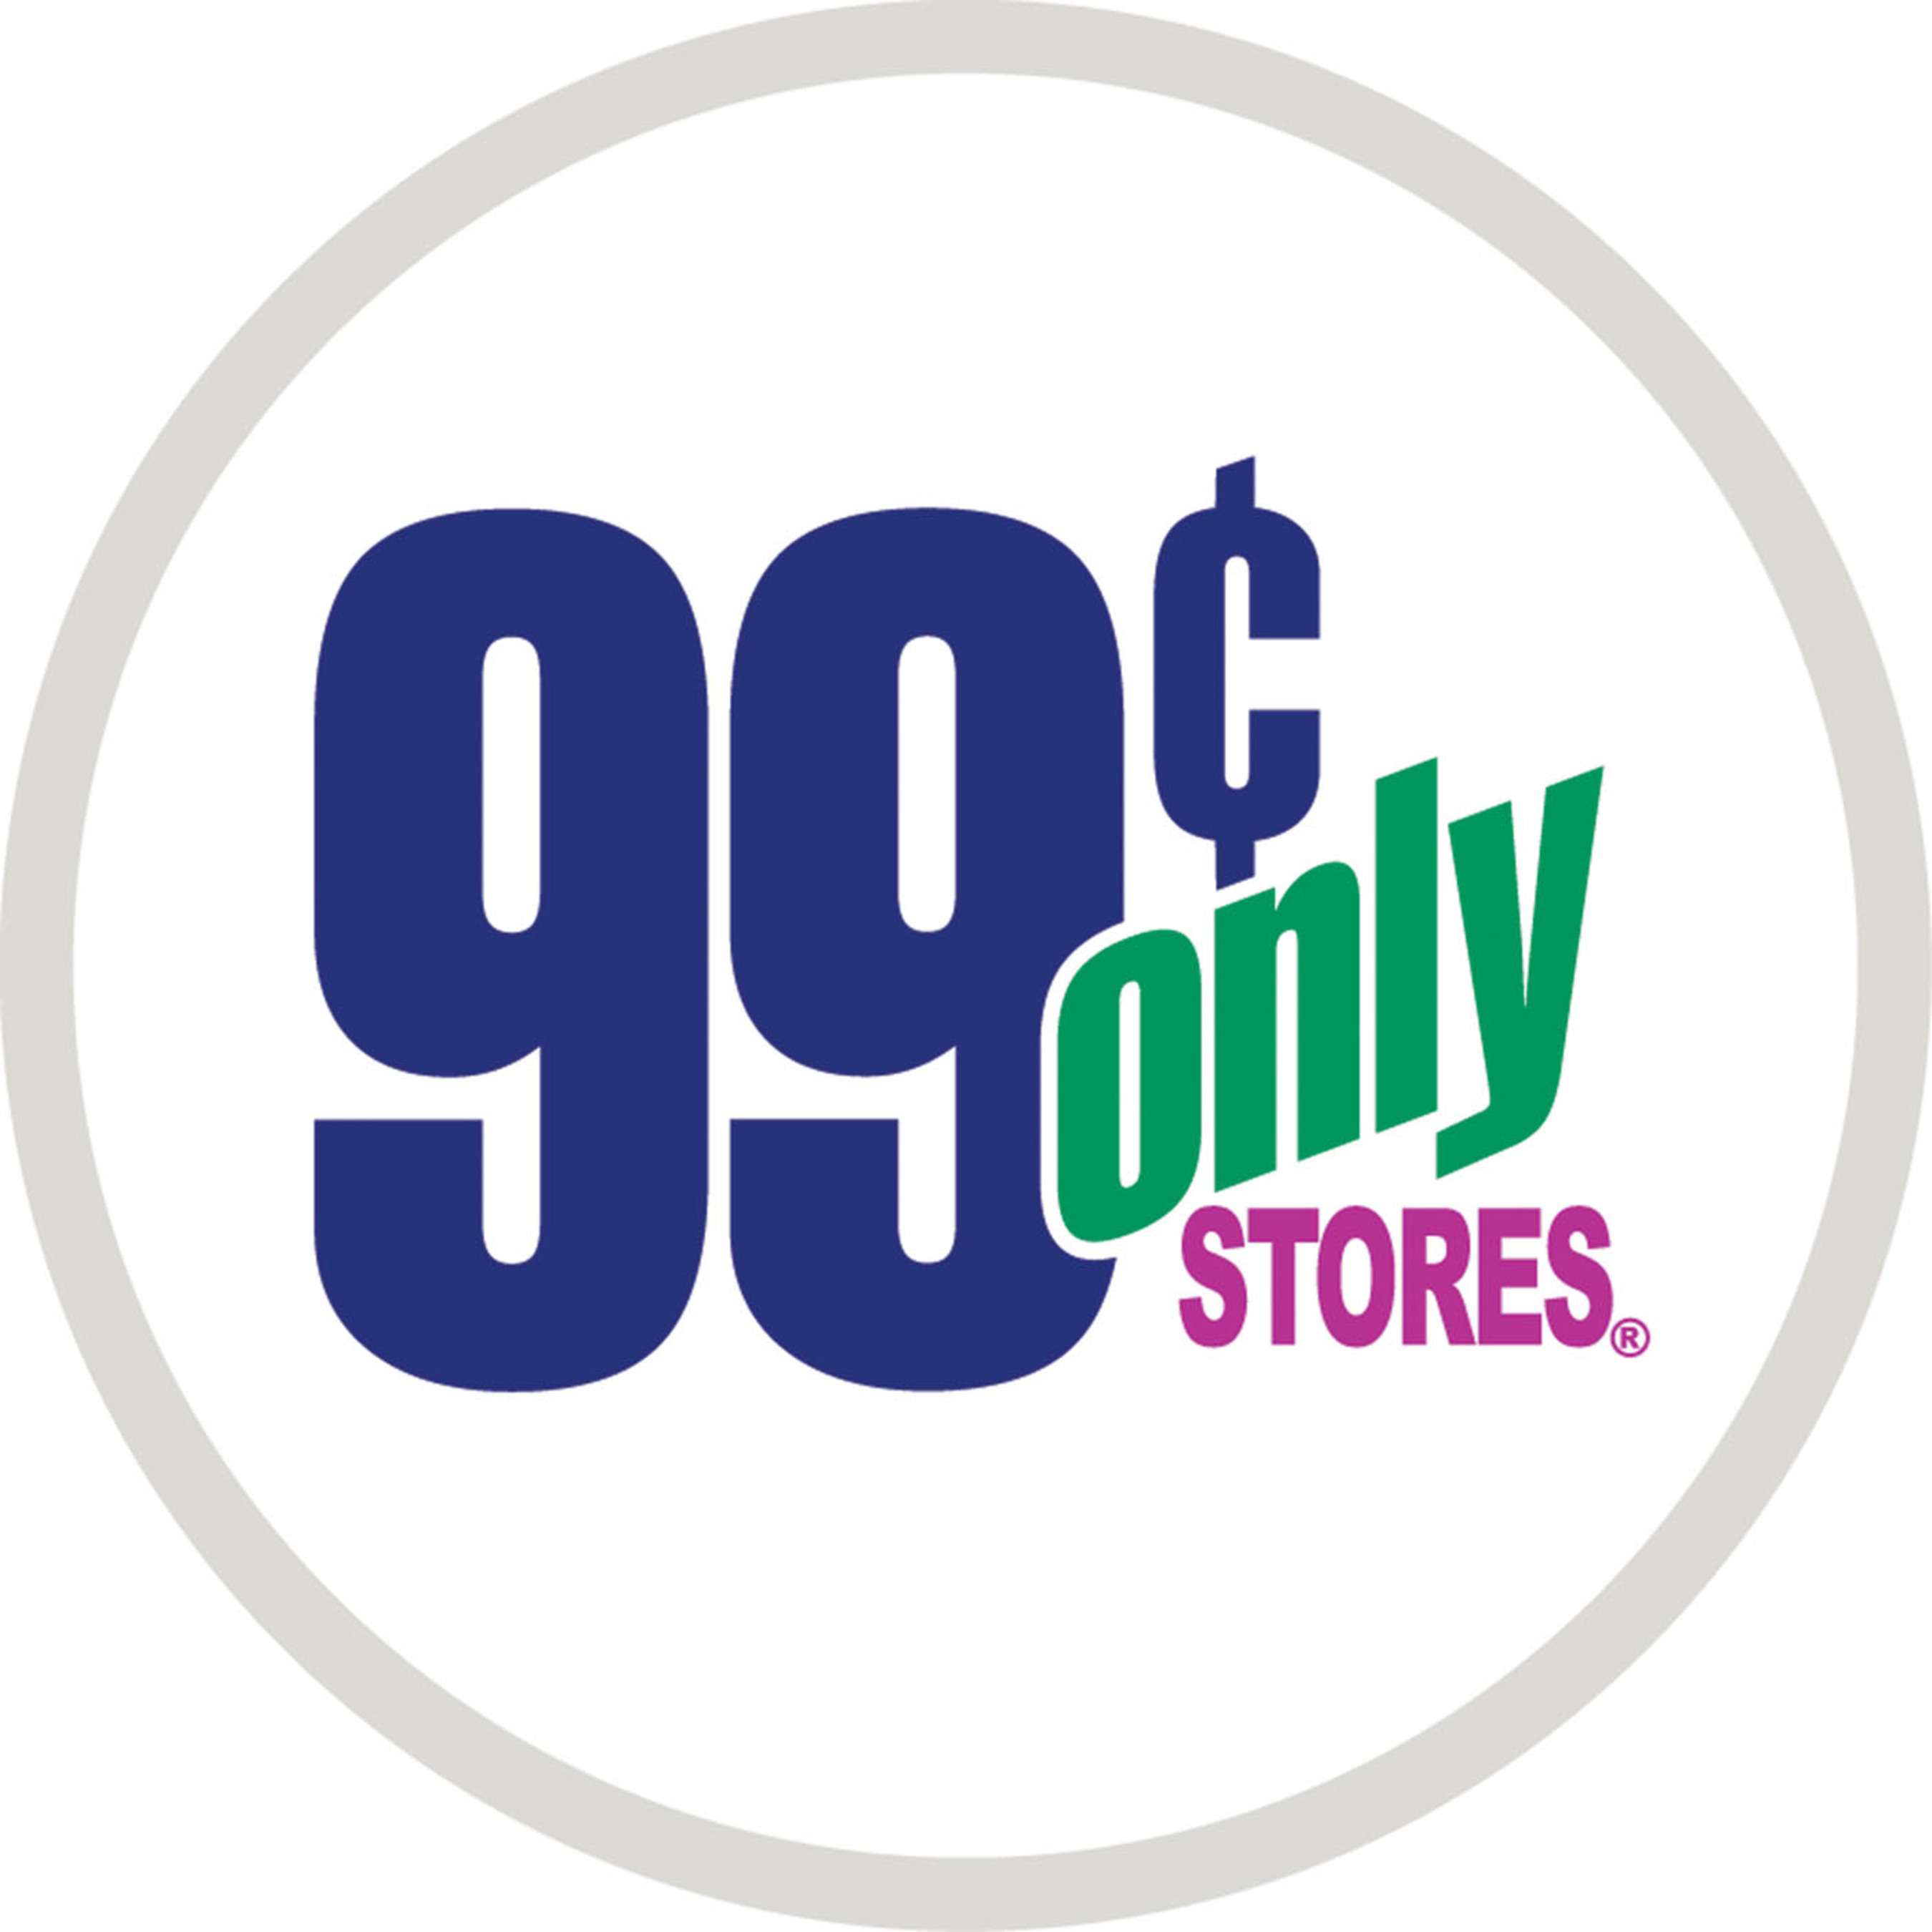 99 Cents Only Stores LLC.